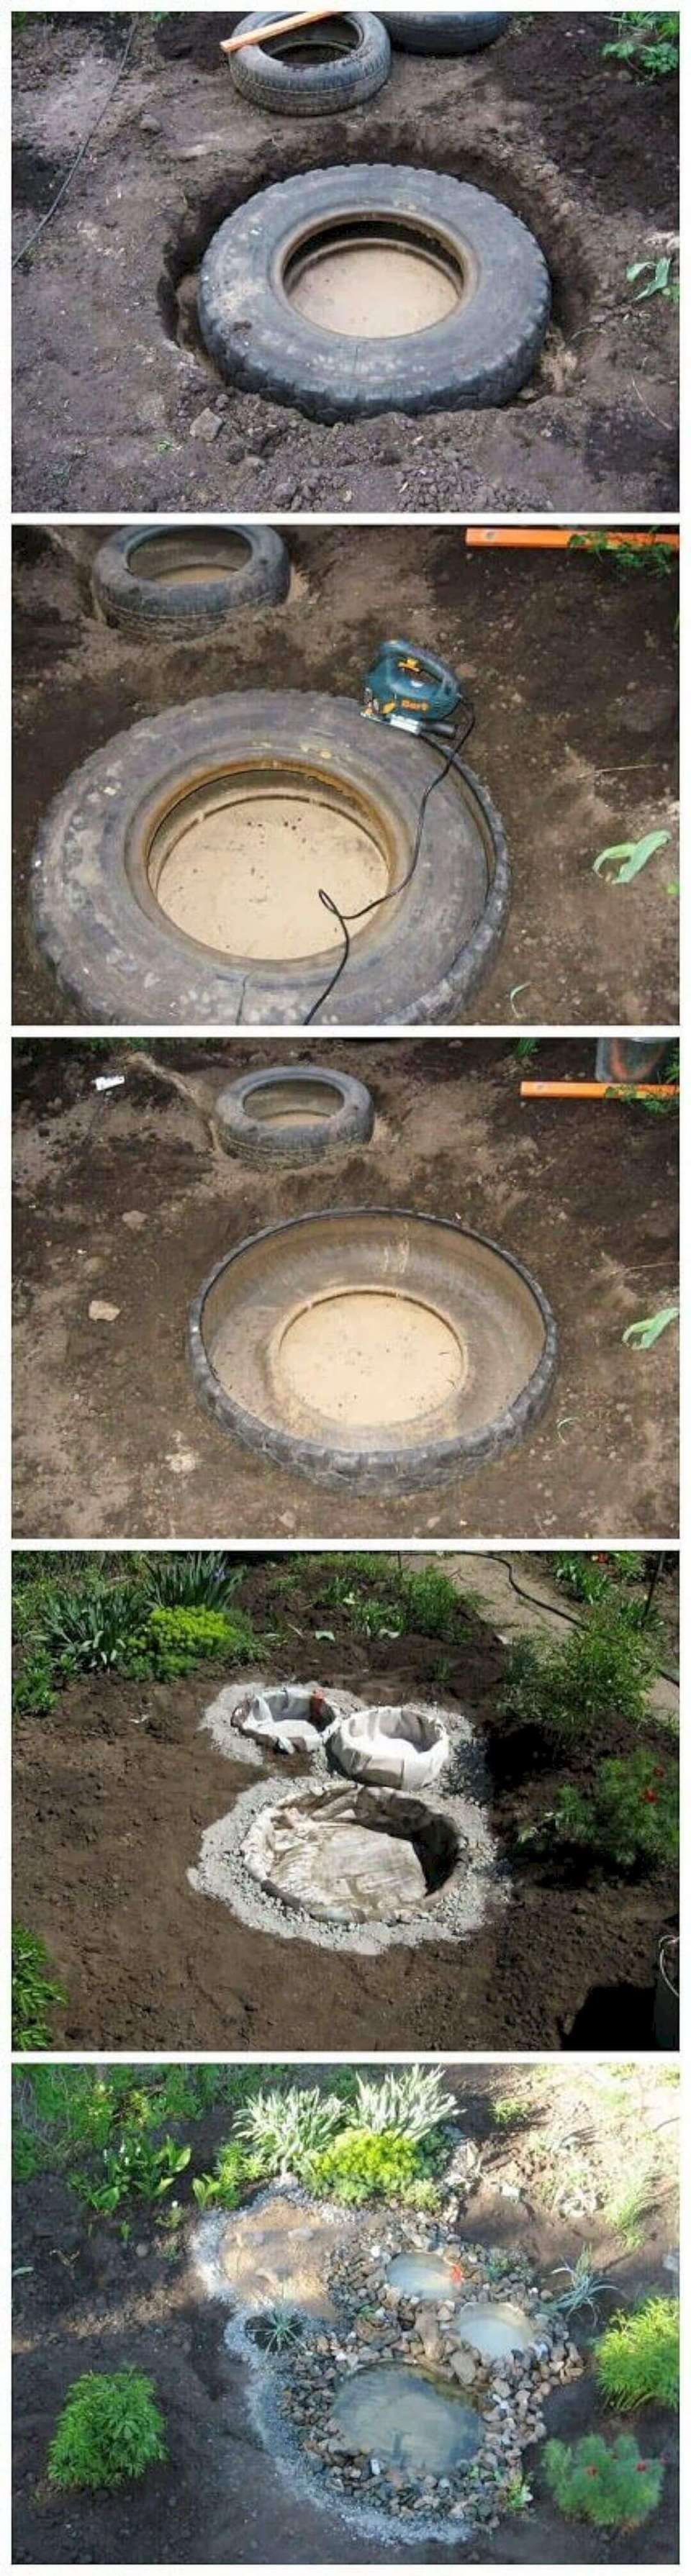 Multi-Basin Recycled Tire Water Feature